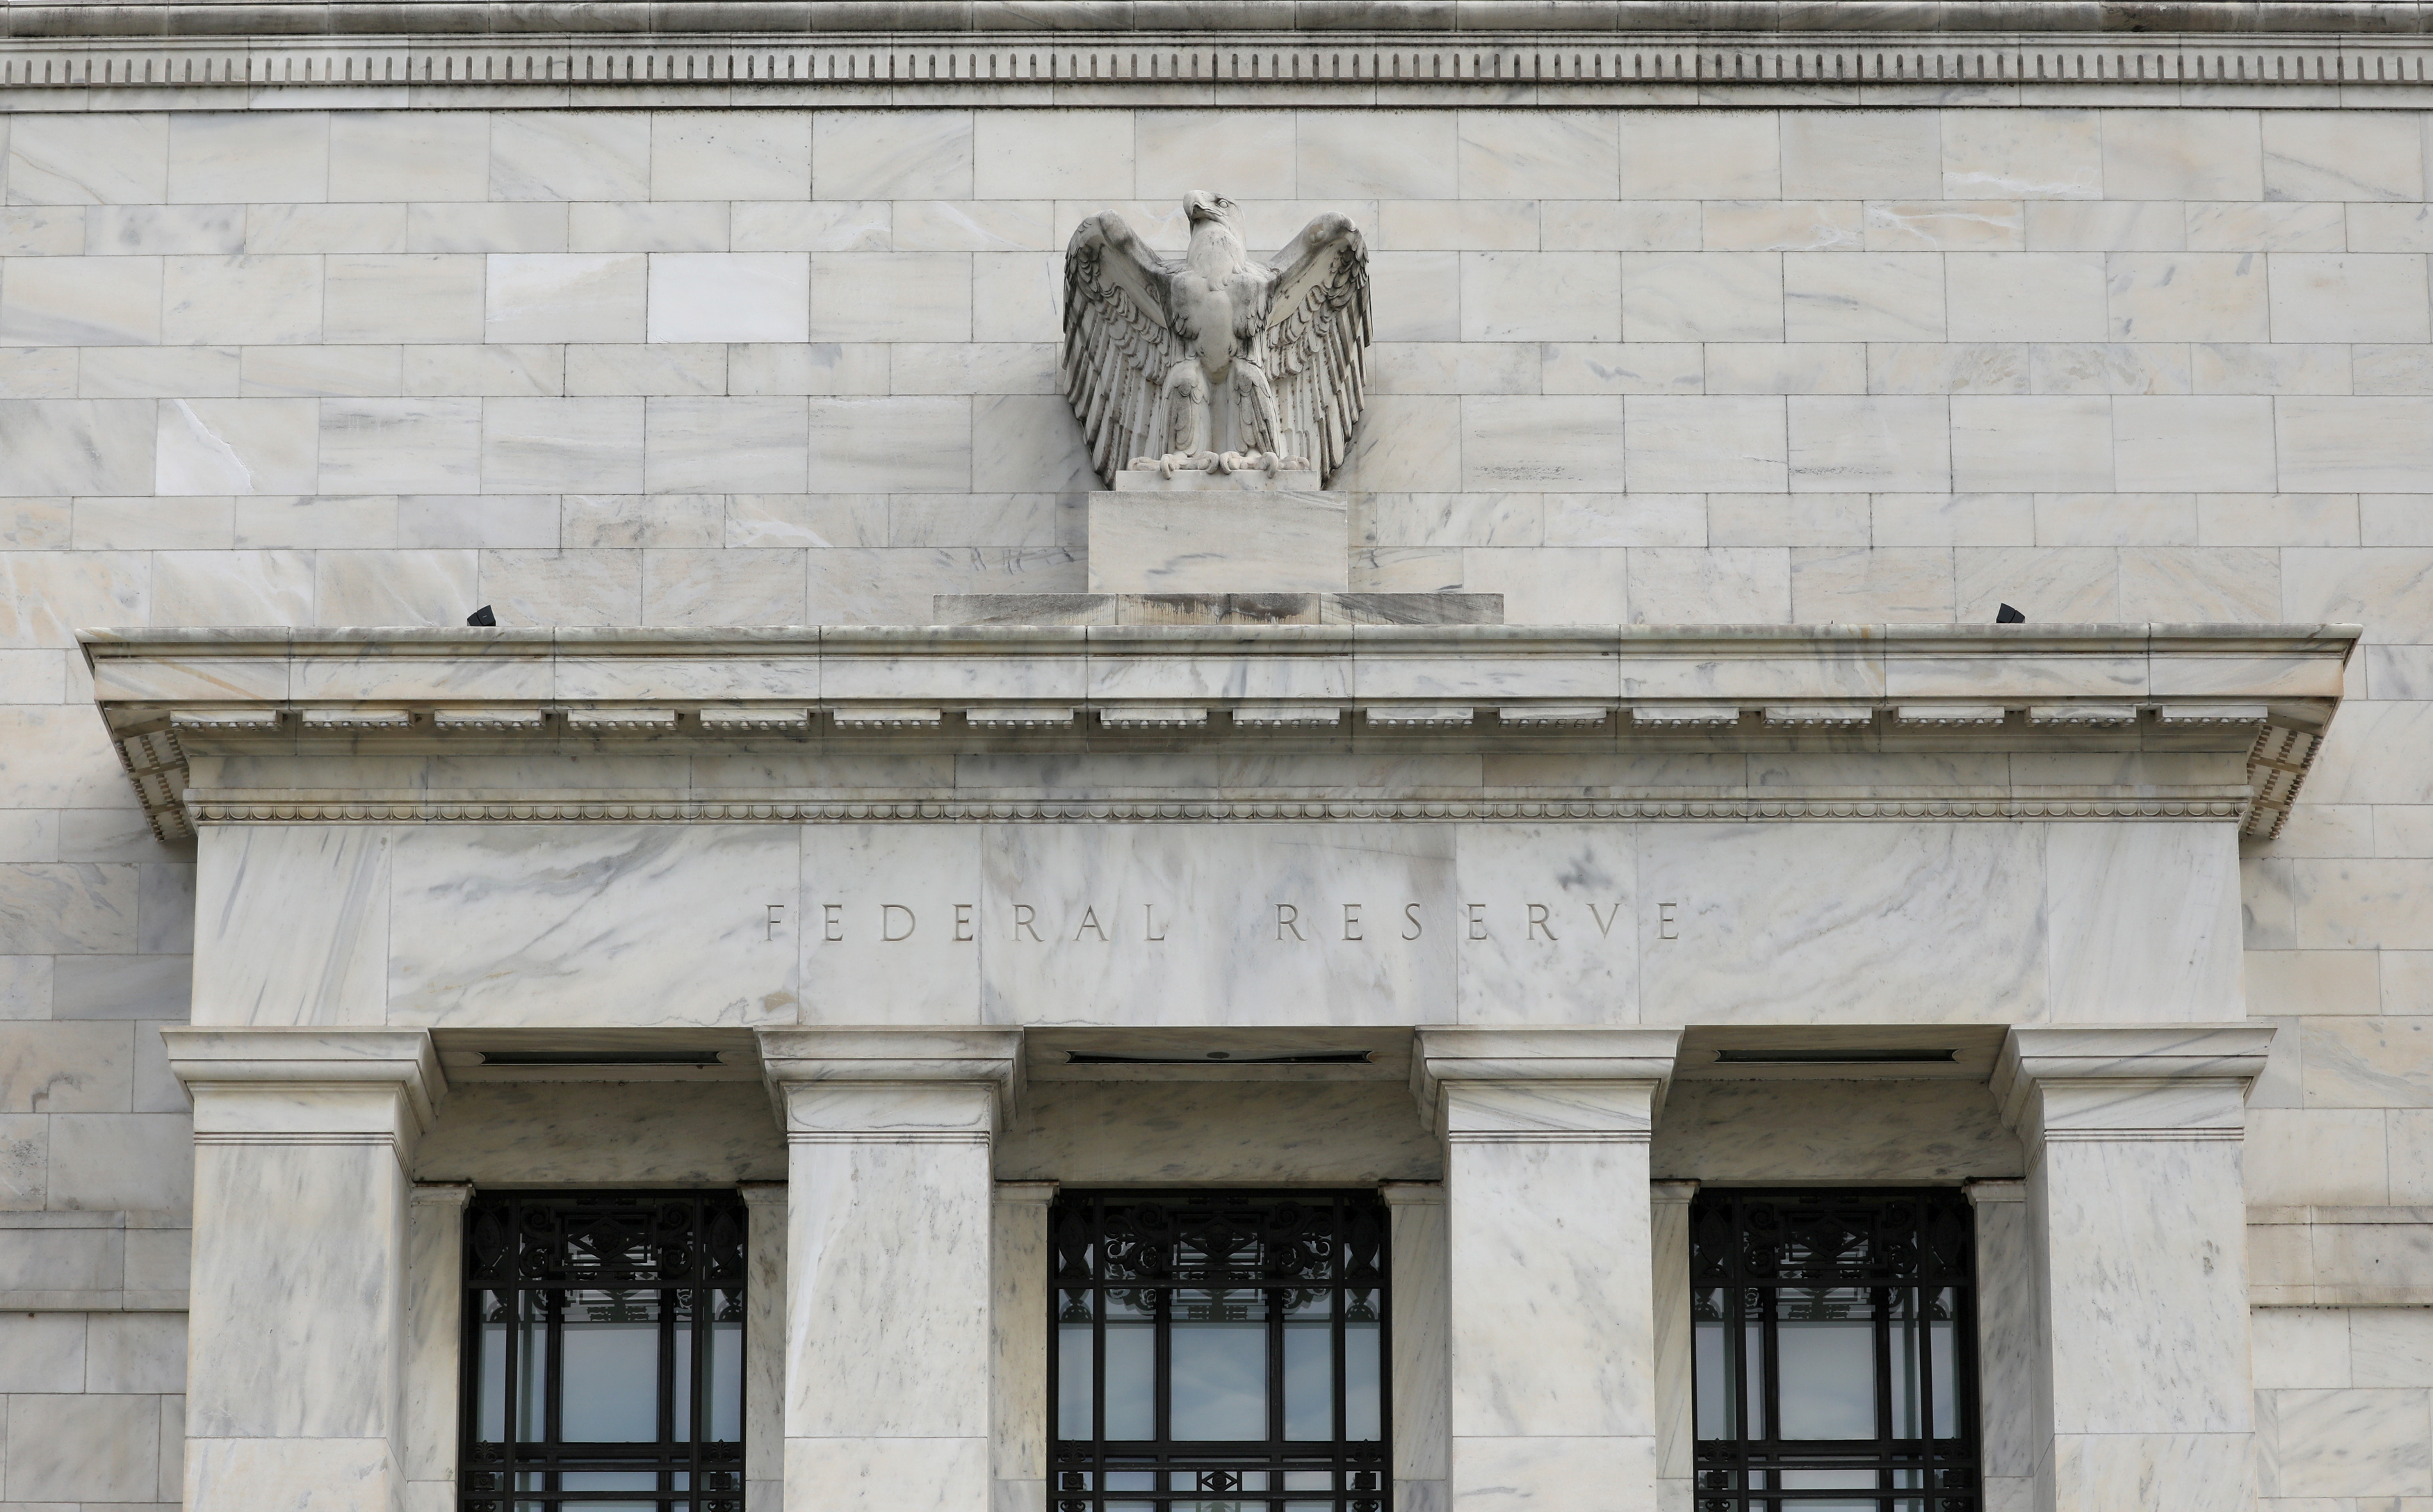 The Federal Reserve building is pictured in Washington, DC, U.S., August 22, 2018. REUTERS/Chris Wattie/